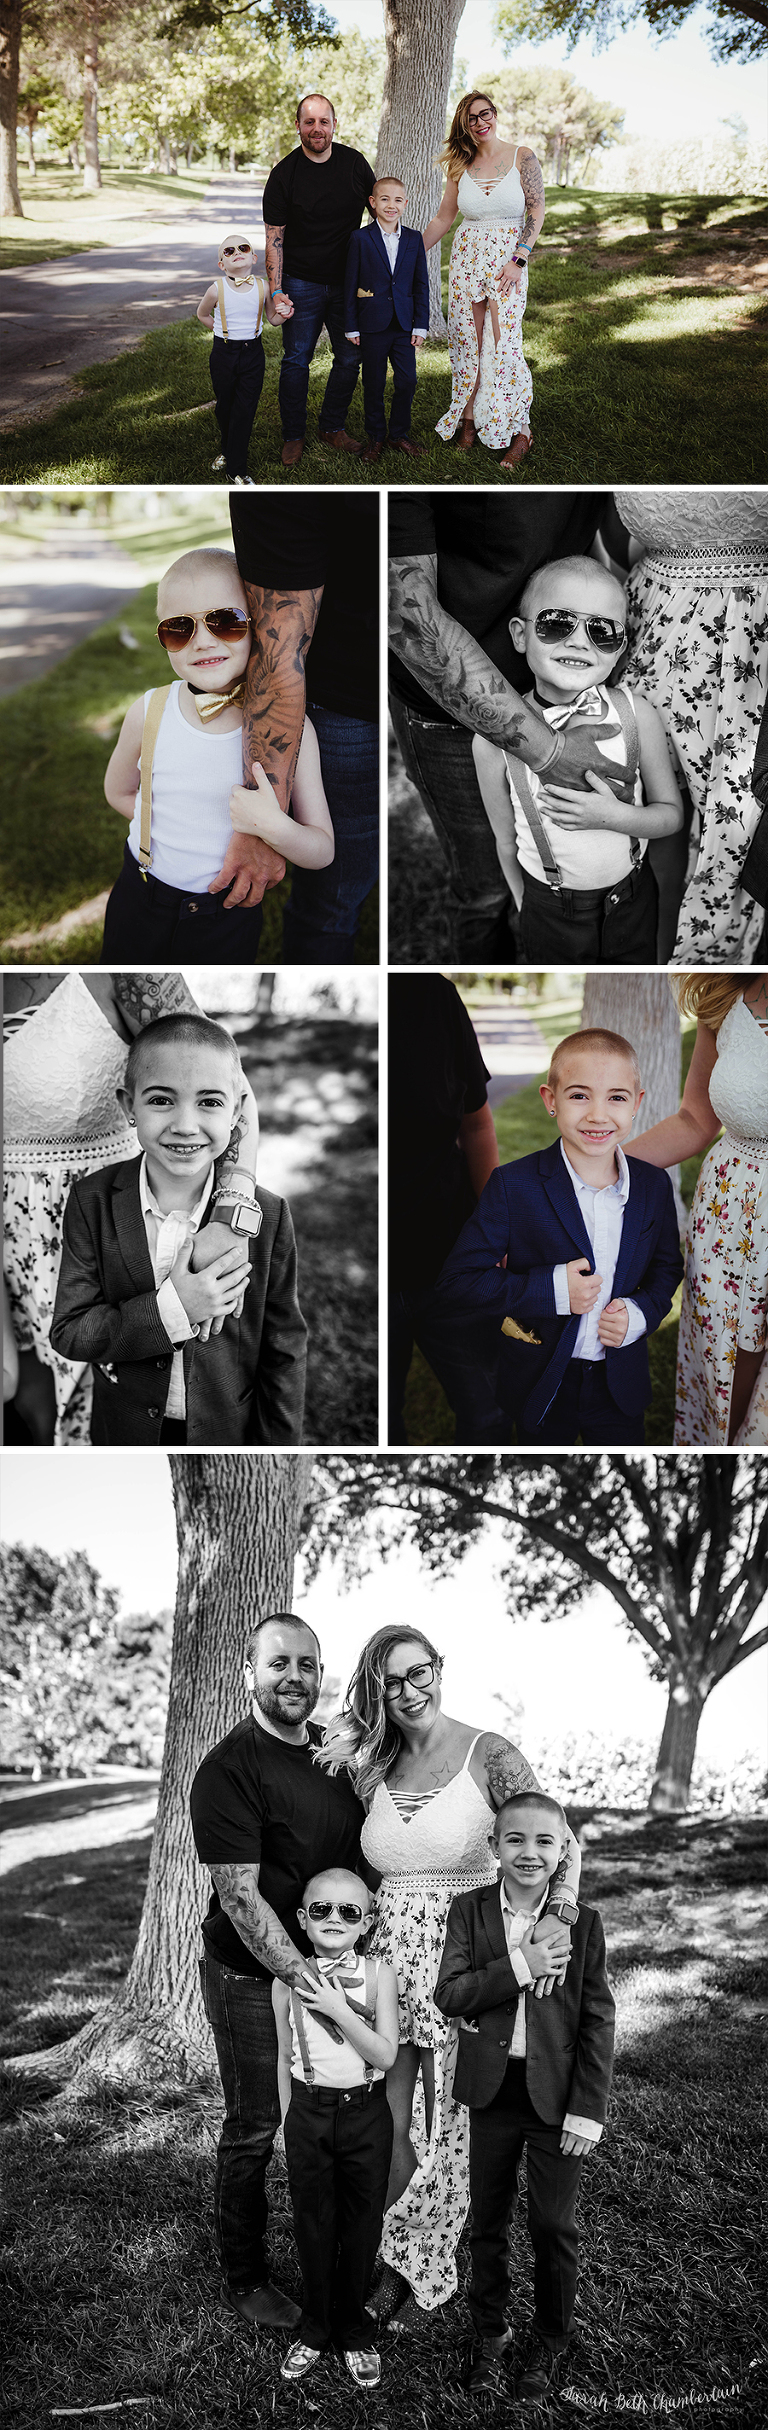 Leukemia Fighter | Las Vegas Family Photographer | The Gold Hope Project | Volunteer Photographer | Childhood Cancer | Mother and Son